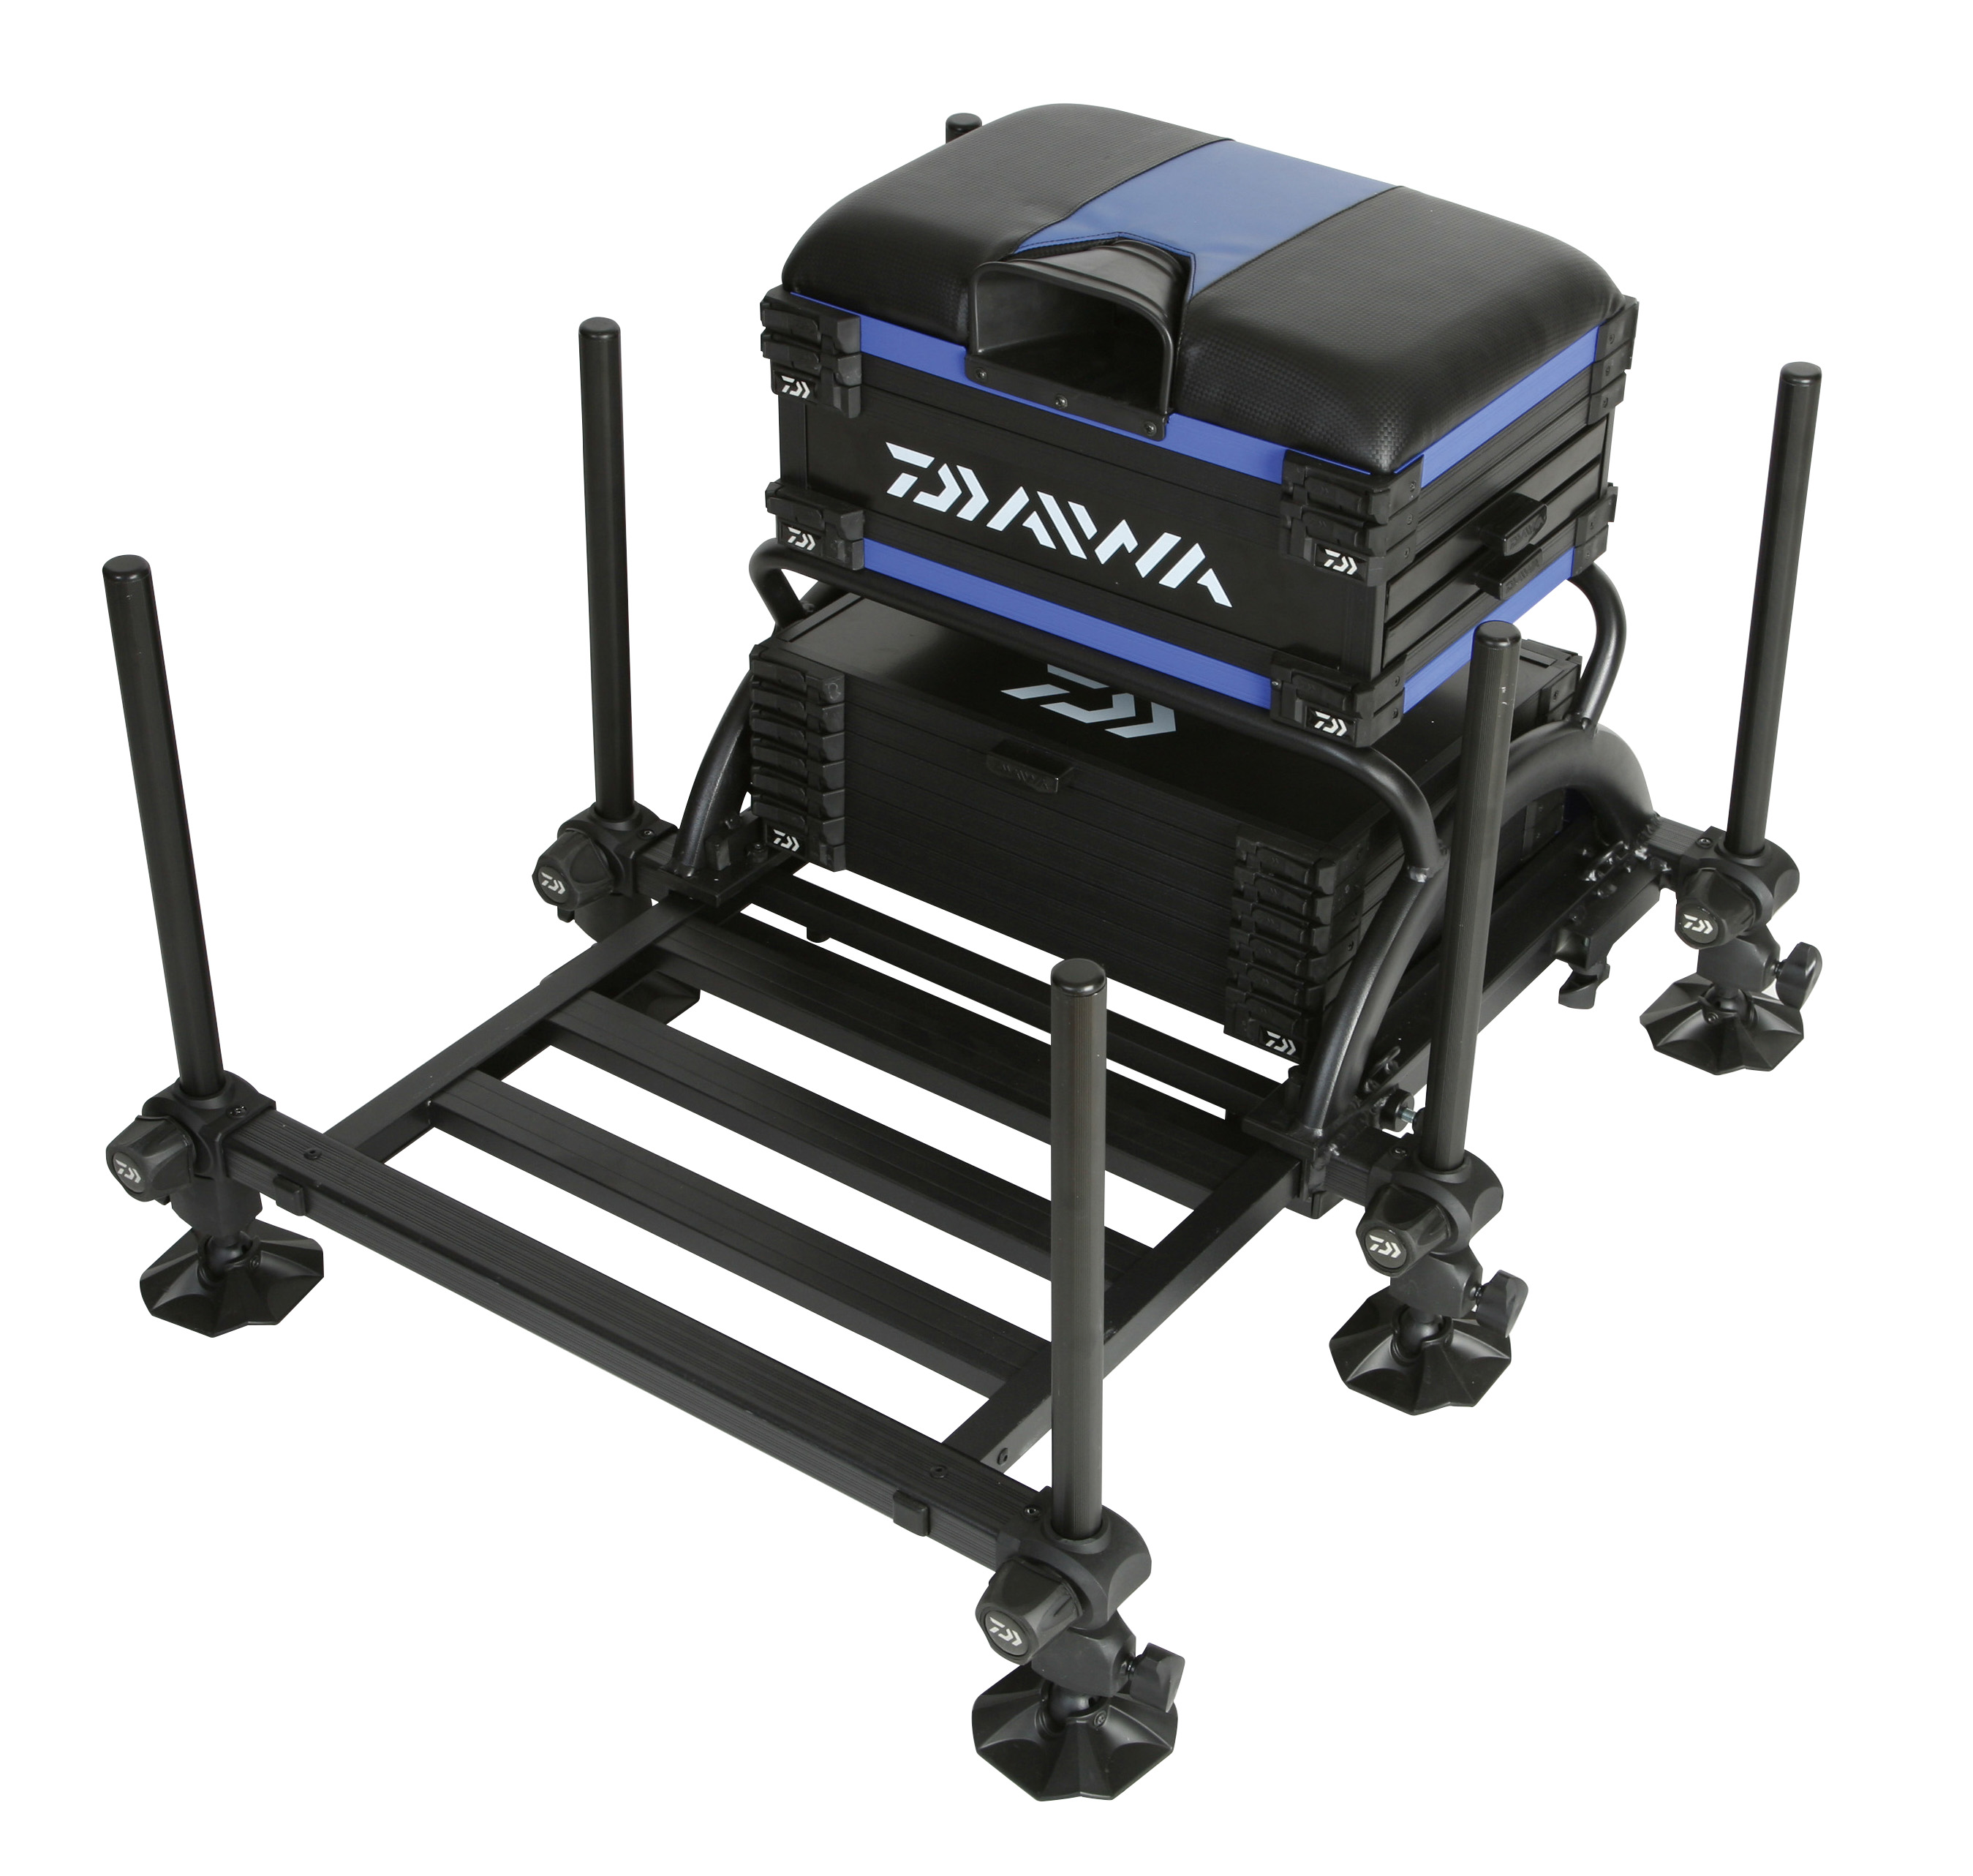 Daiwa Tournament 500 Seat Boxes